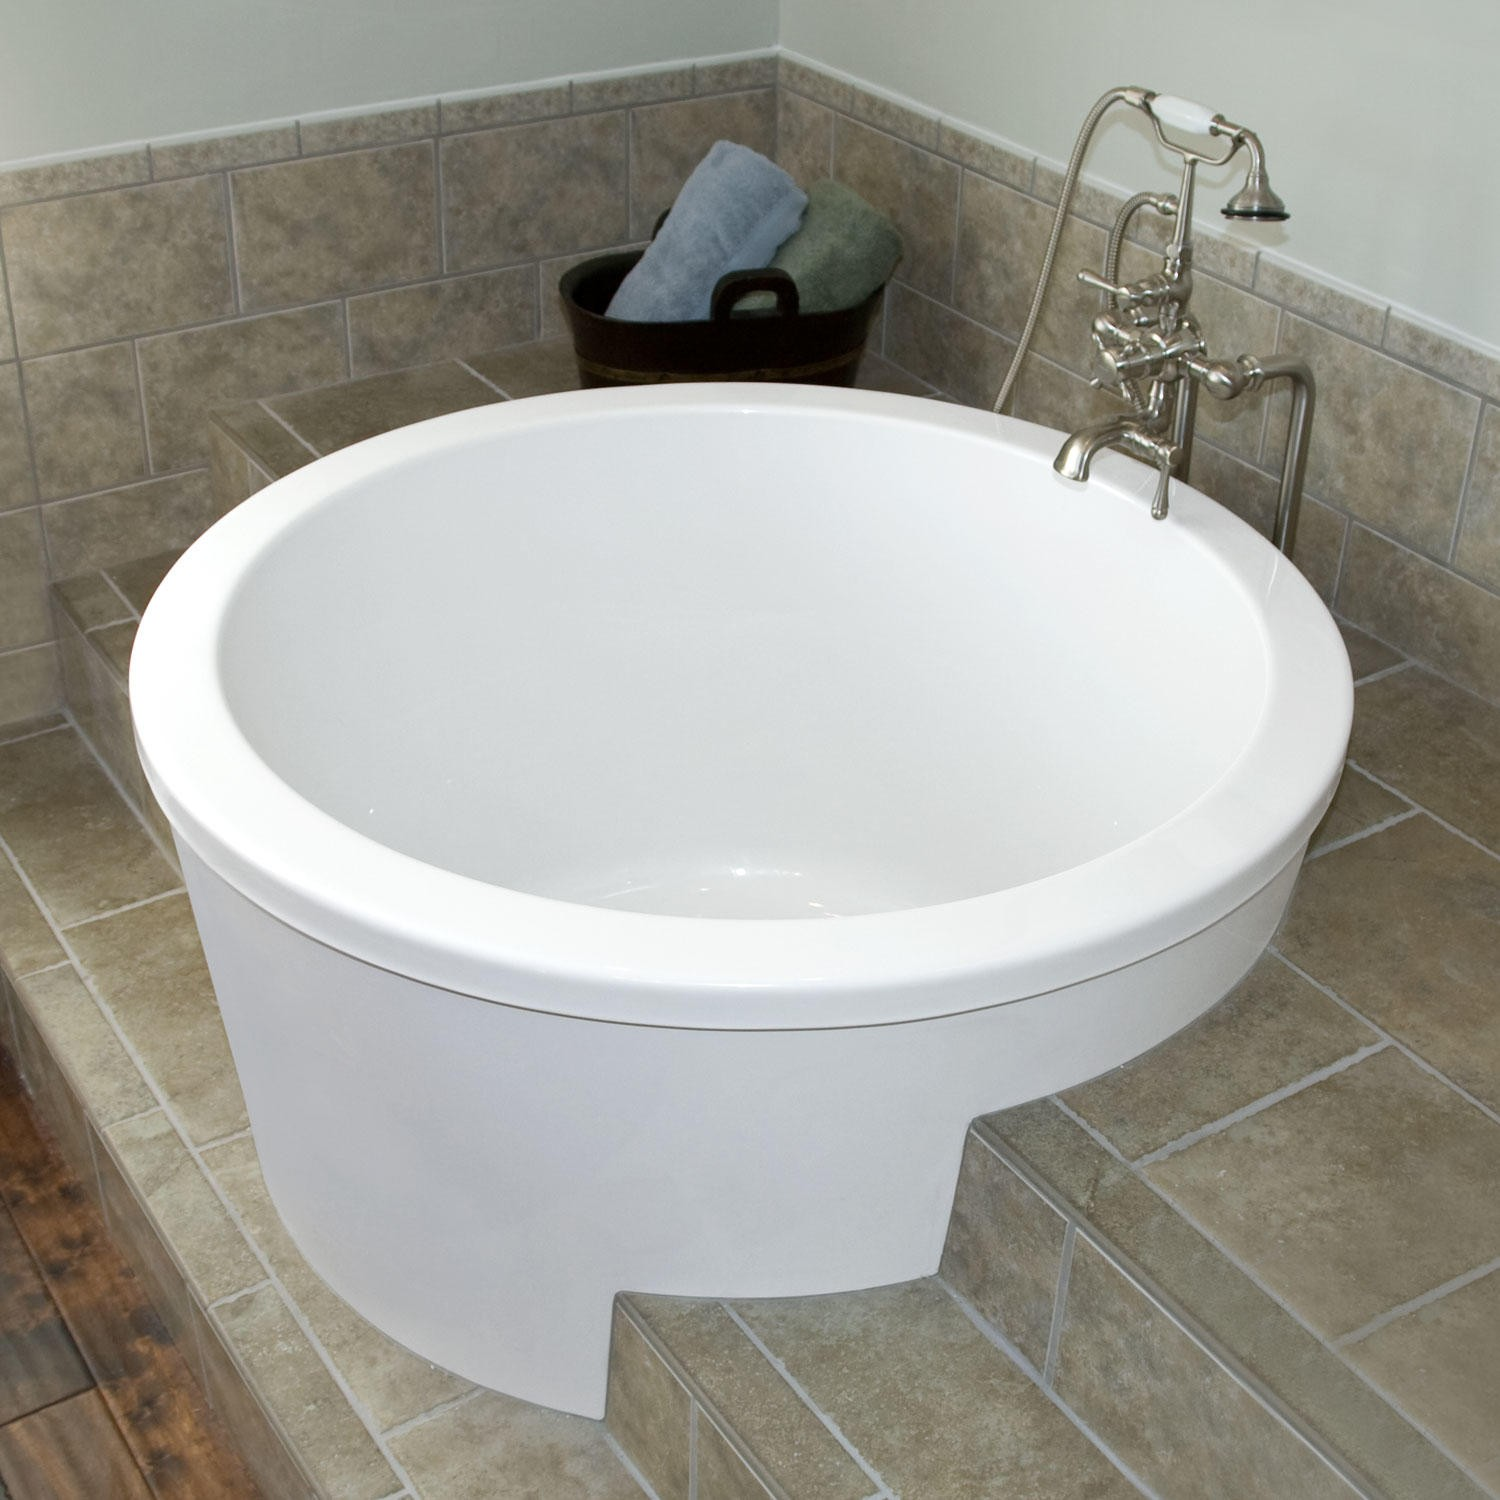 Round japanese soaking tub ofuro soaking tubs the vibe of japan in your bathroom for Small japanese soaking tubs small bathrooms